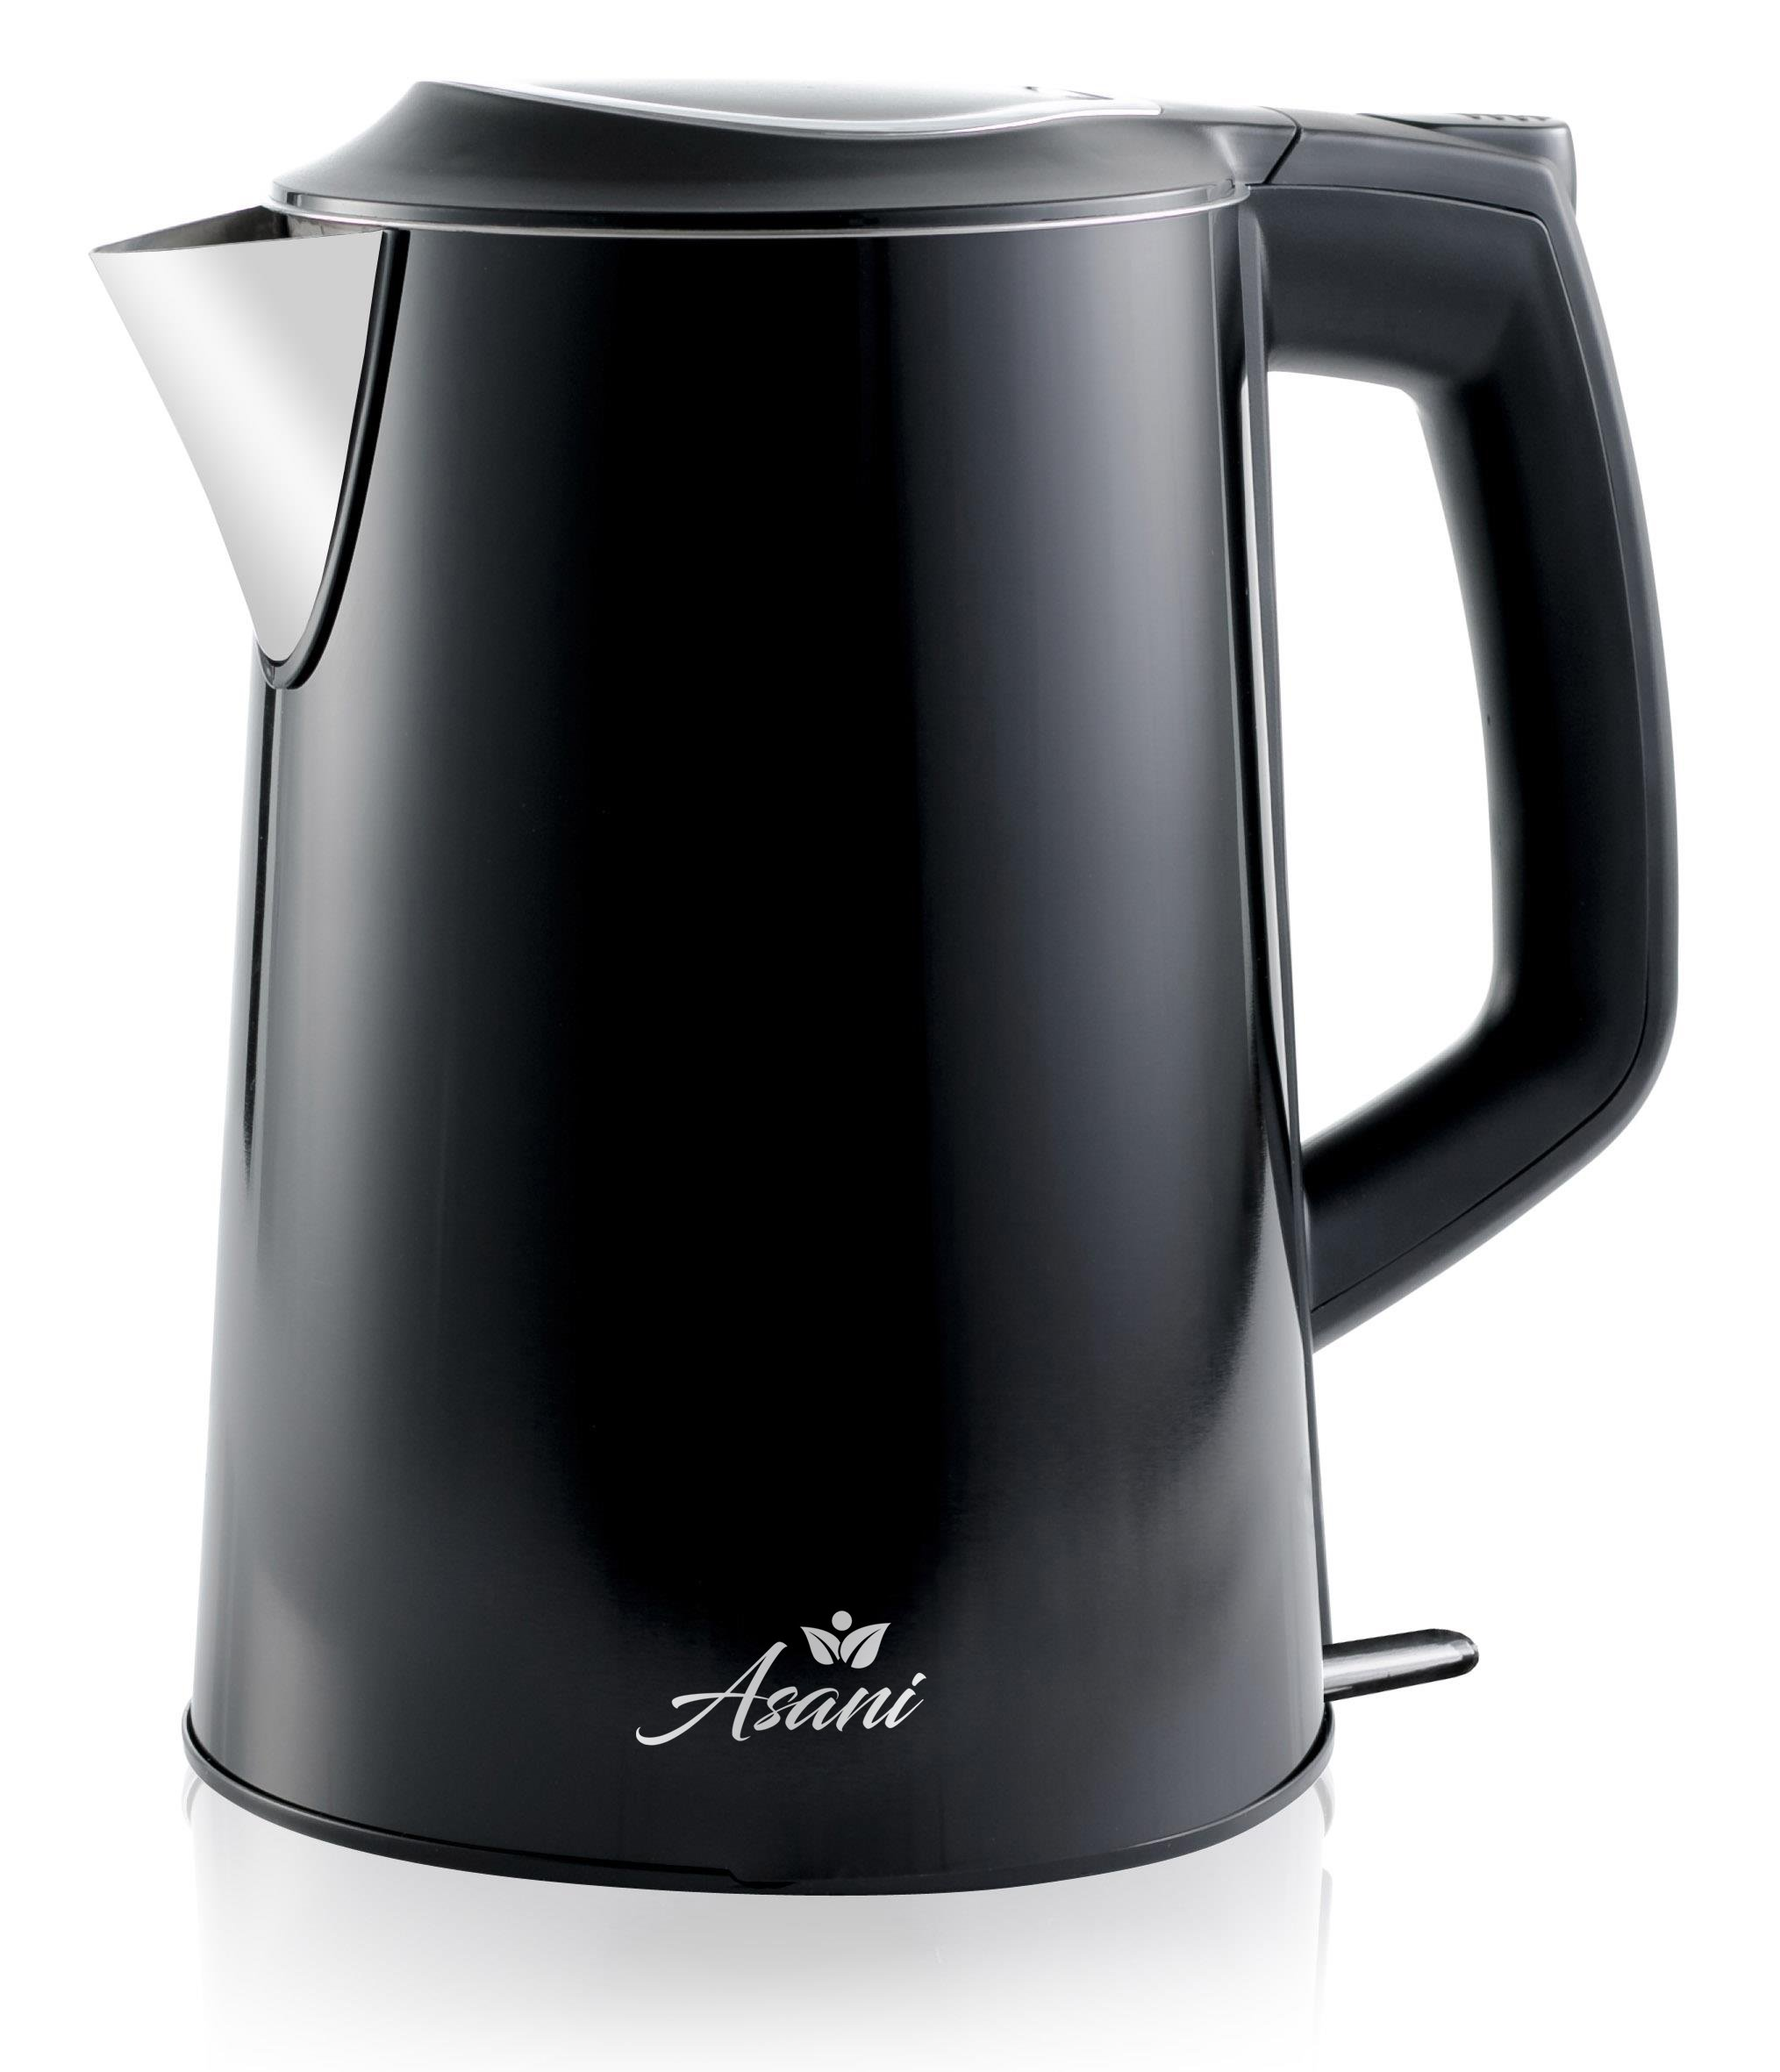 Double Wall Safe Touch Electric Kettle | Stainless Steel with 100% Plastic-Free Interior | Cordless Electronic Hot Water Heater Pot with Cool Touch, Boil Dry Protection & More(1.9Qrt/1.8L)(Black)